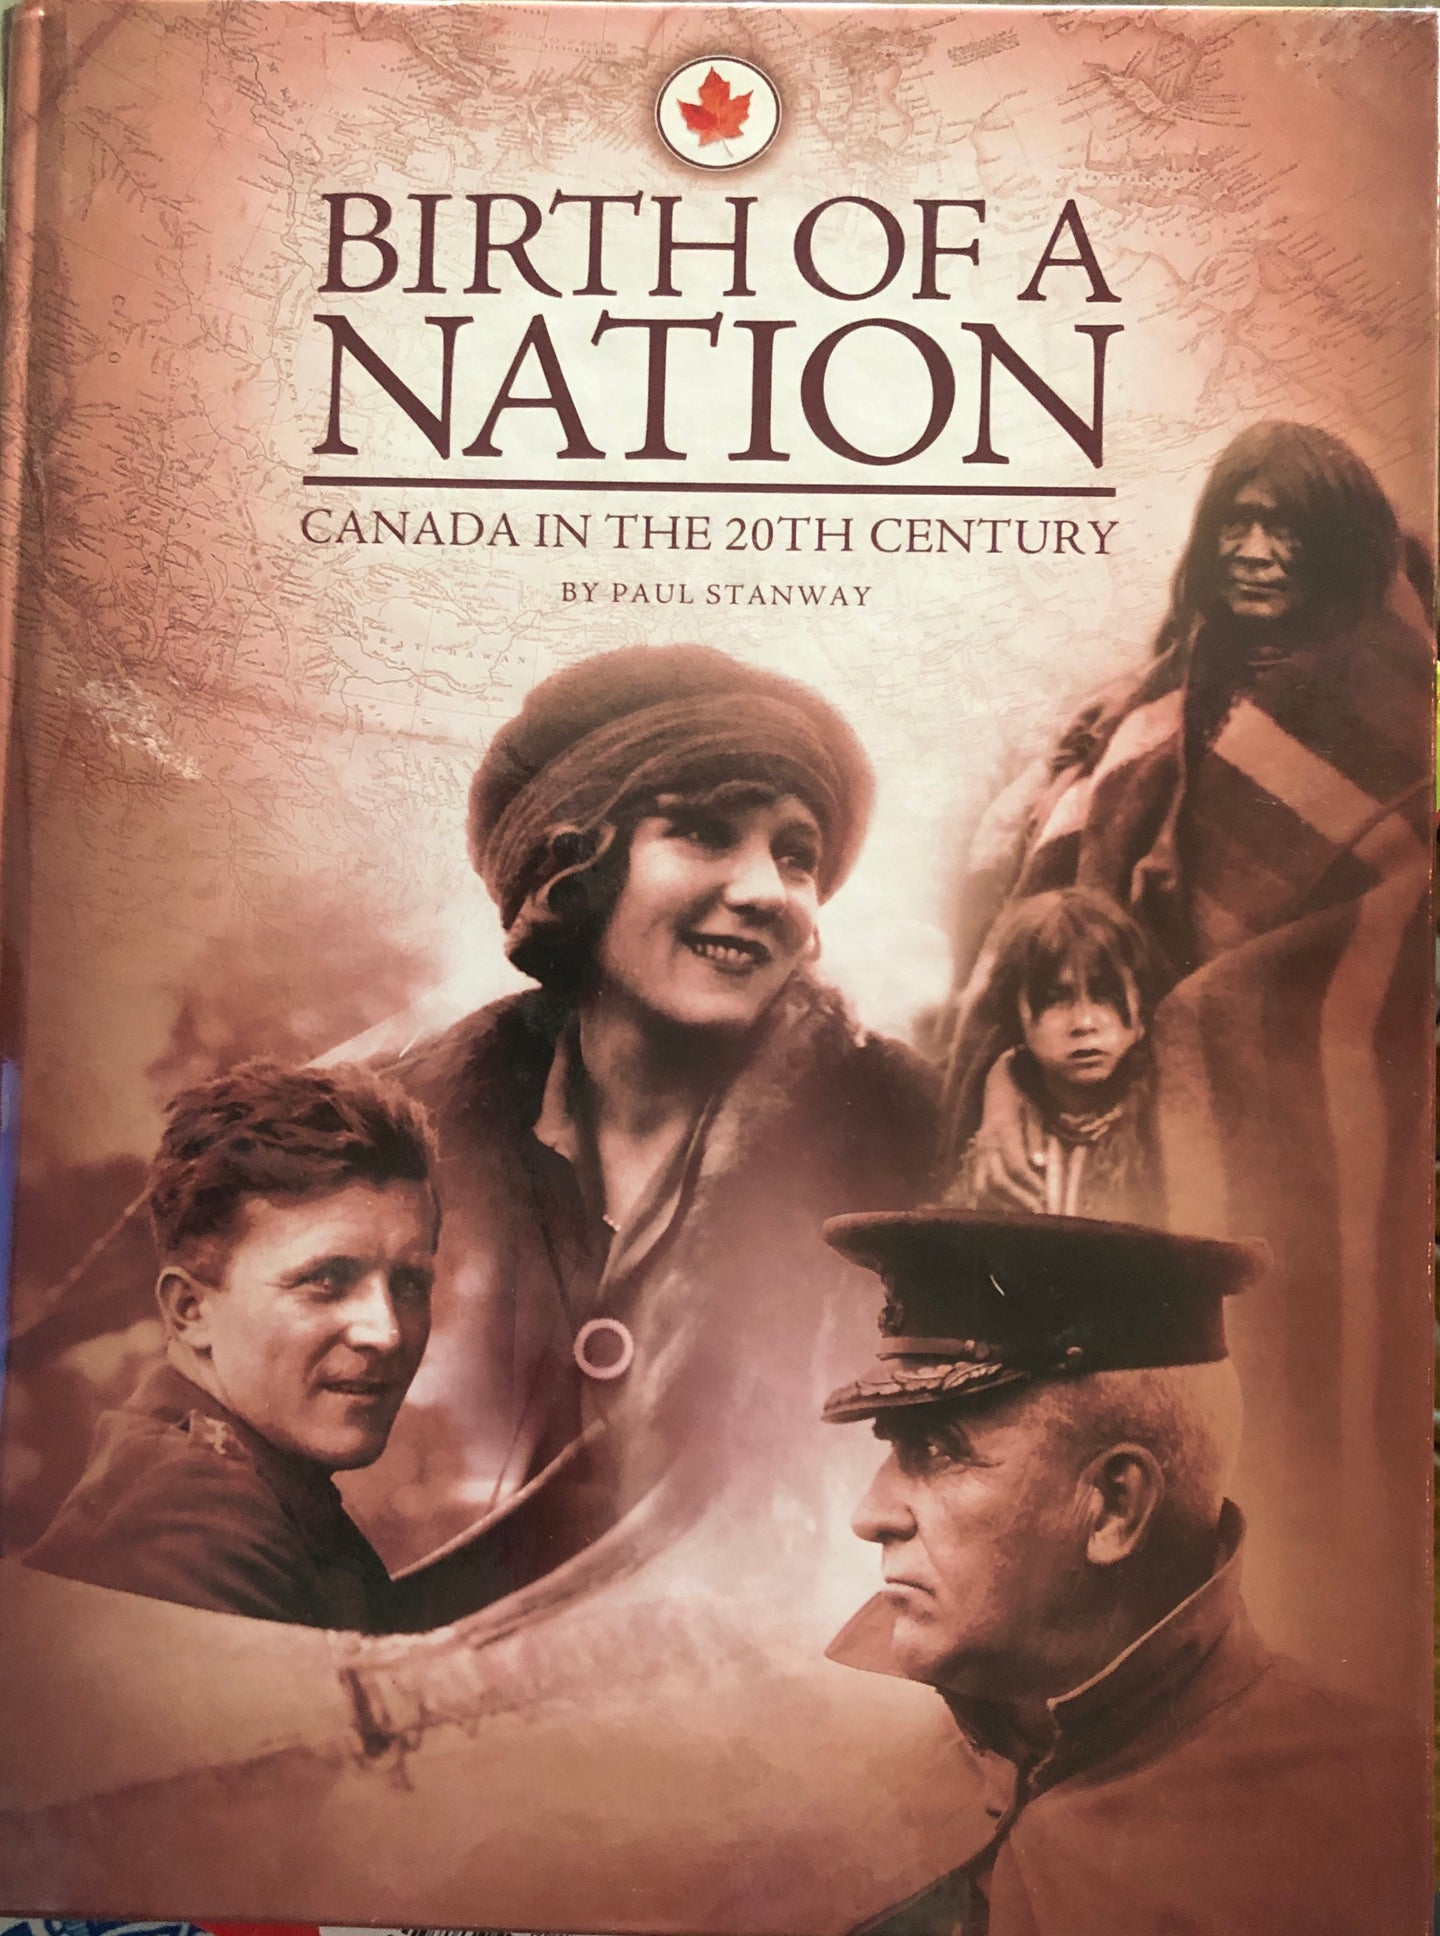 Birth of a Nation: Canada in the 20th Century